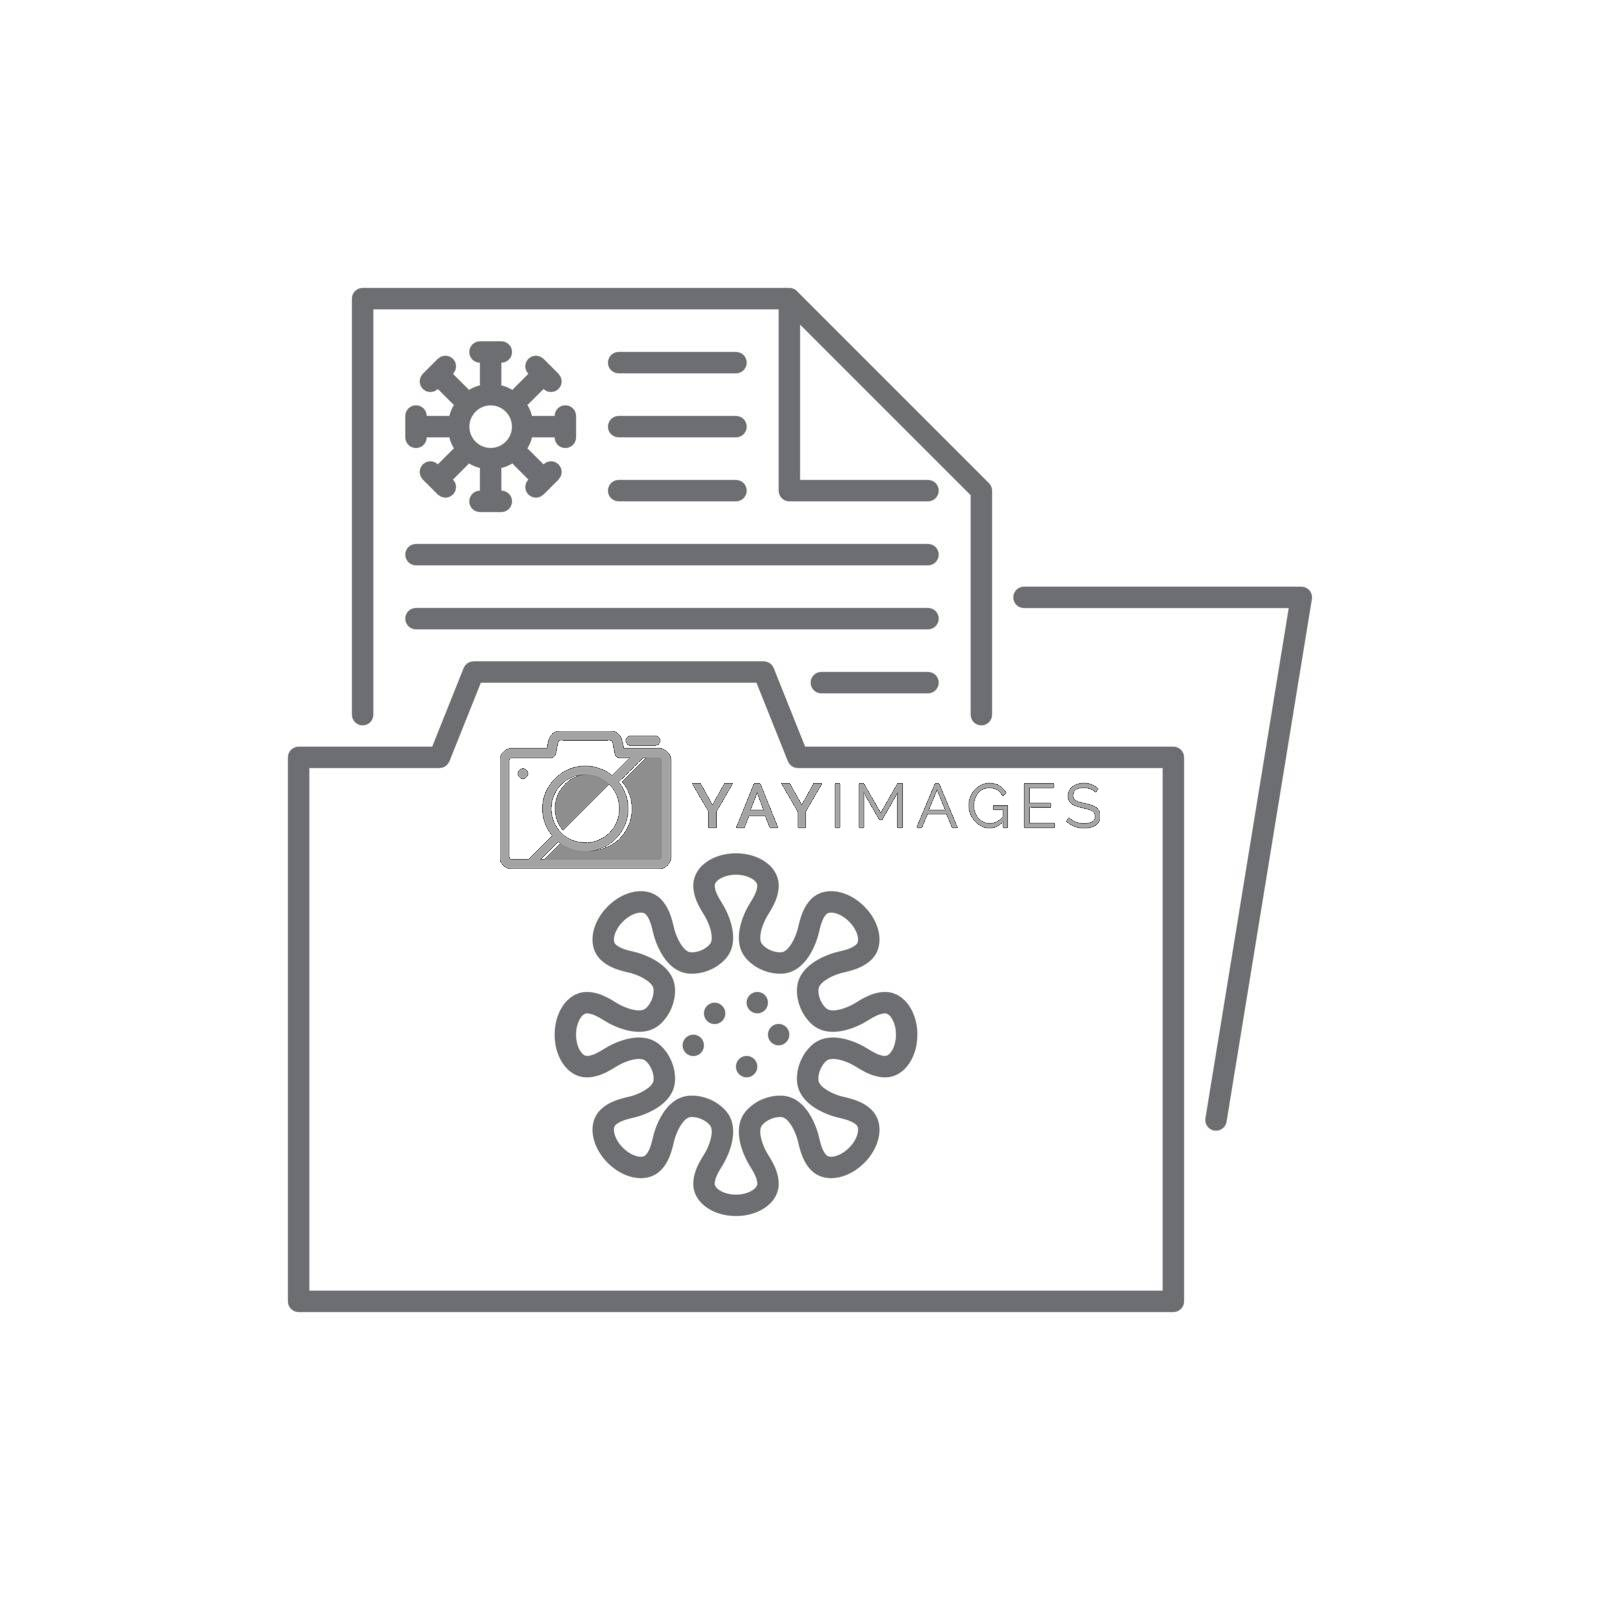 Virus information related vector thin line icon. Documents Folder with Virus Information. Isolated on white background. Editable stroke. Vector illustration.